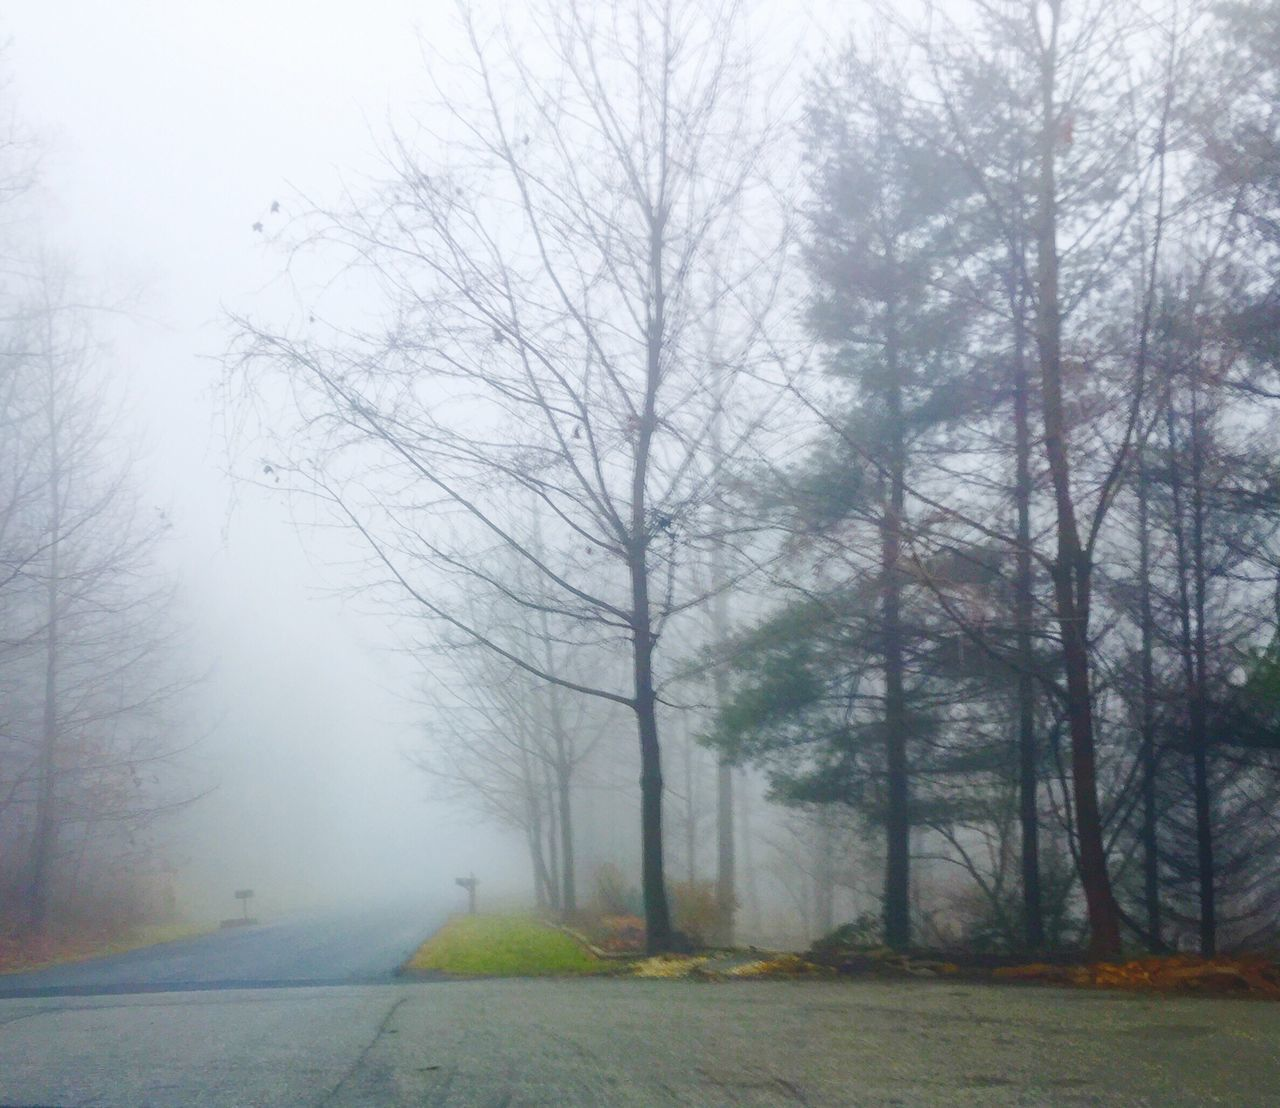 tree, nature, fog, tranquility, grass, bare tree, tranquil scene, autumn, landscape, outdoors, beauty in nature, day, scenics, no people, branch, sky